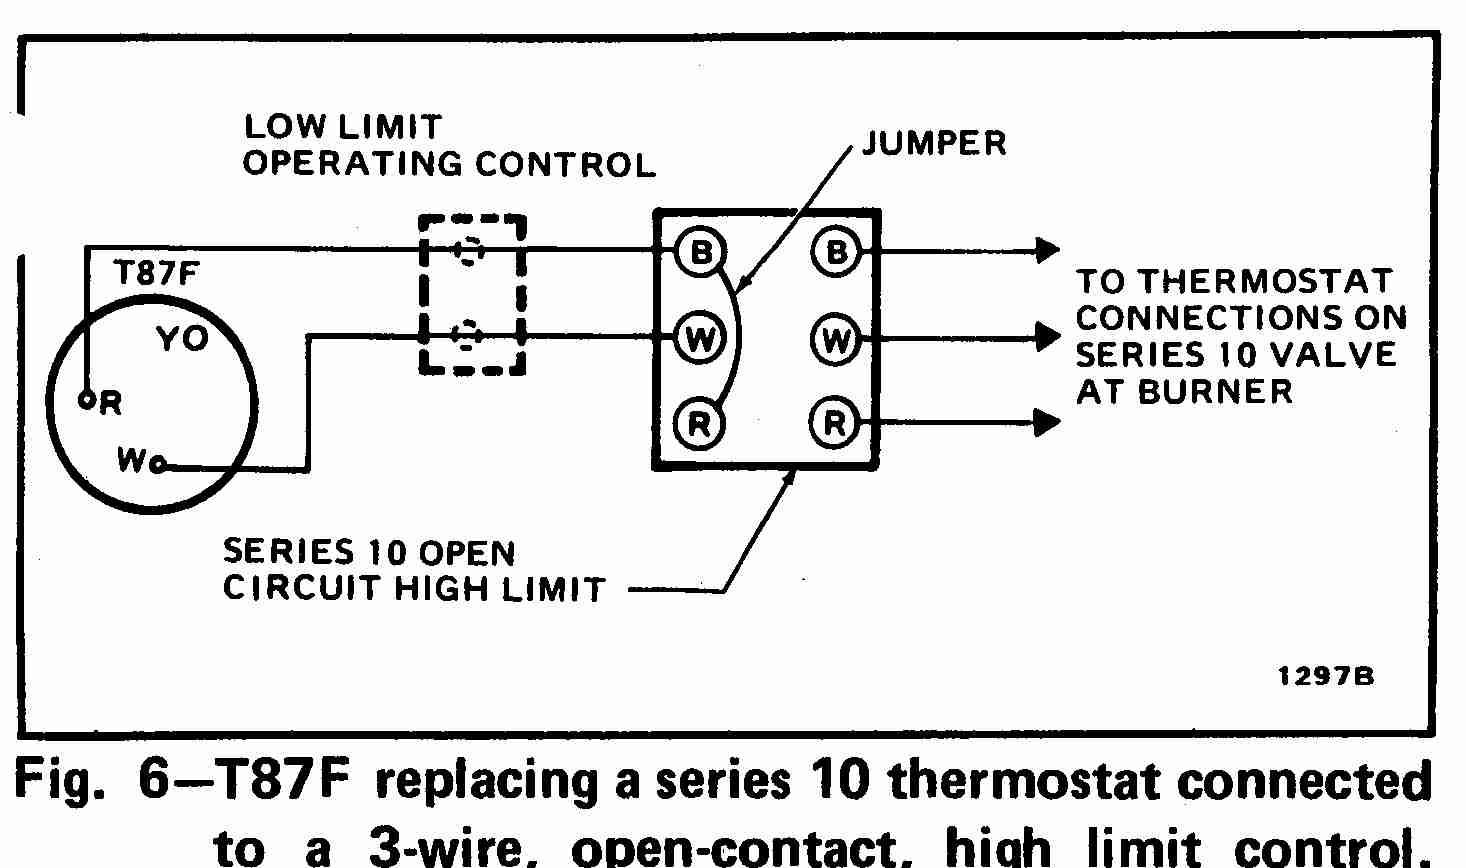 TT_T87F_0002_3WHL_DJF room thermostat wiring diagrams for hvac systems 2 wire thermostat wiring diagram heat only at aneh.co